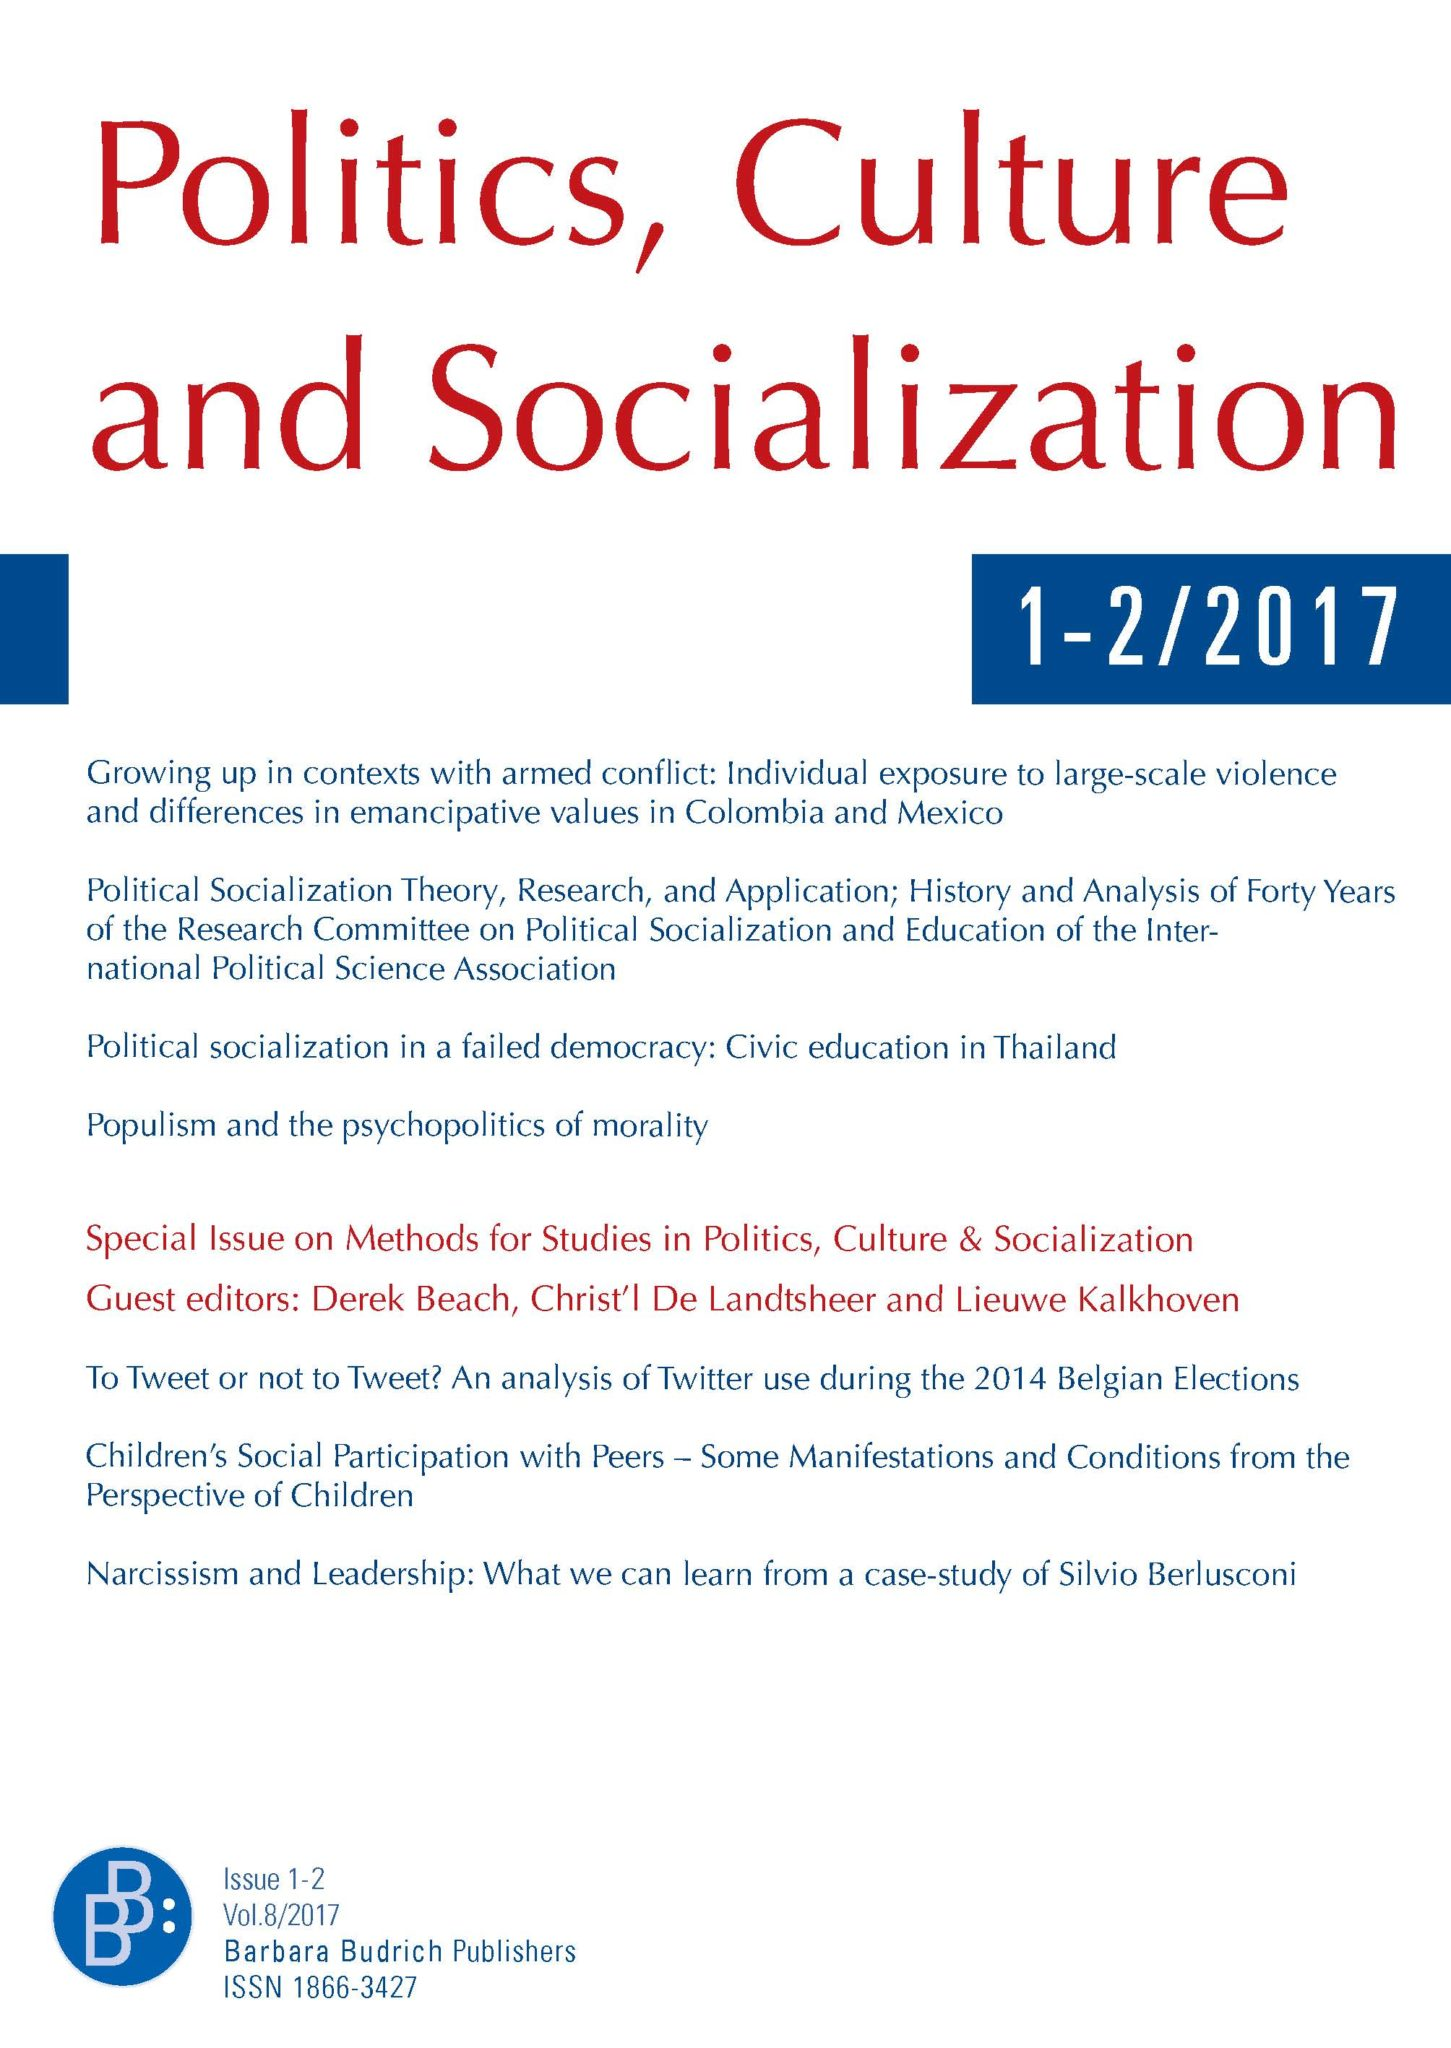 PCS – Politics, Culture and Socialization 1+2-2017: Methods for Studies in Politics, Culture & Socialization (II)